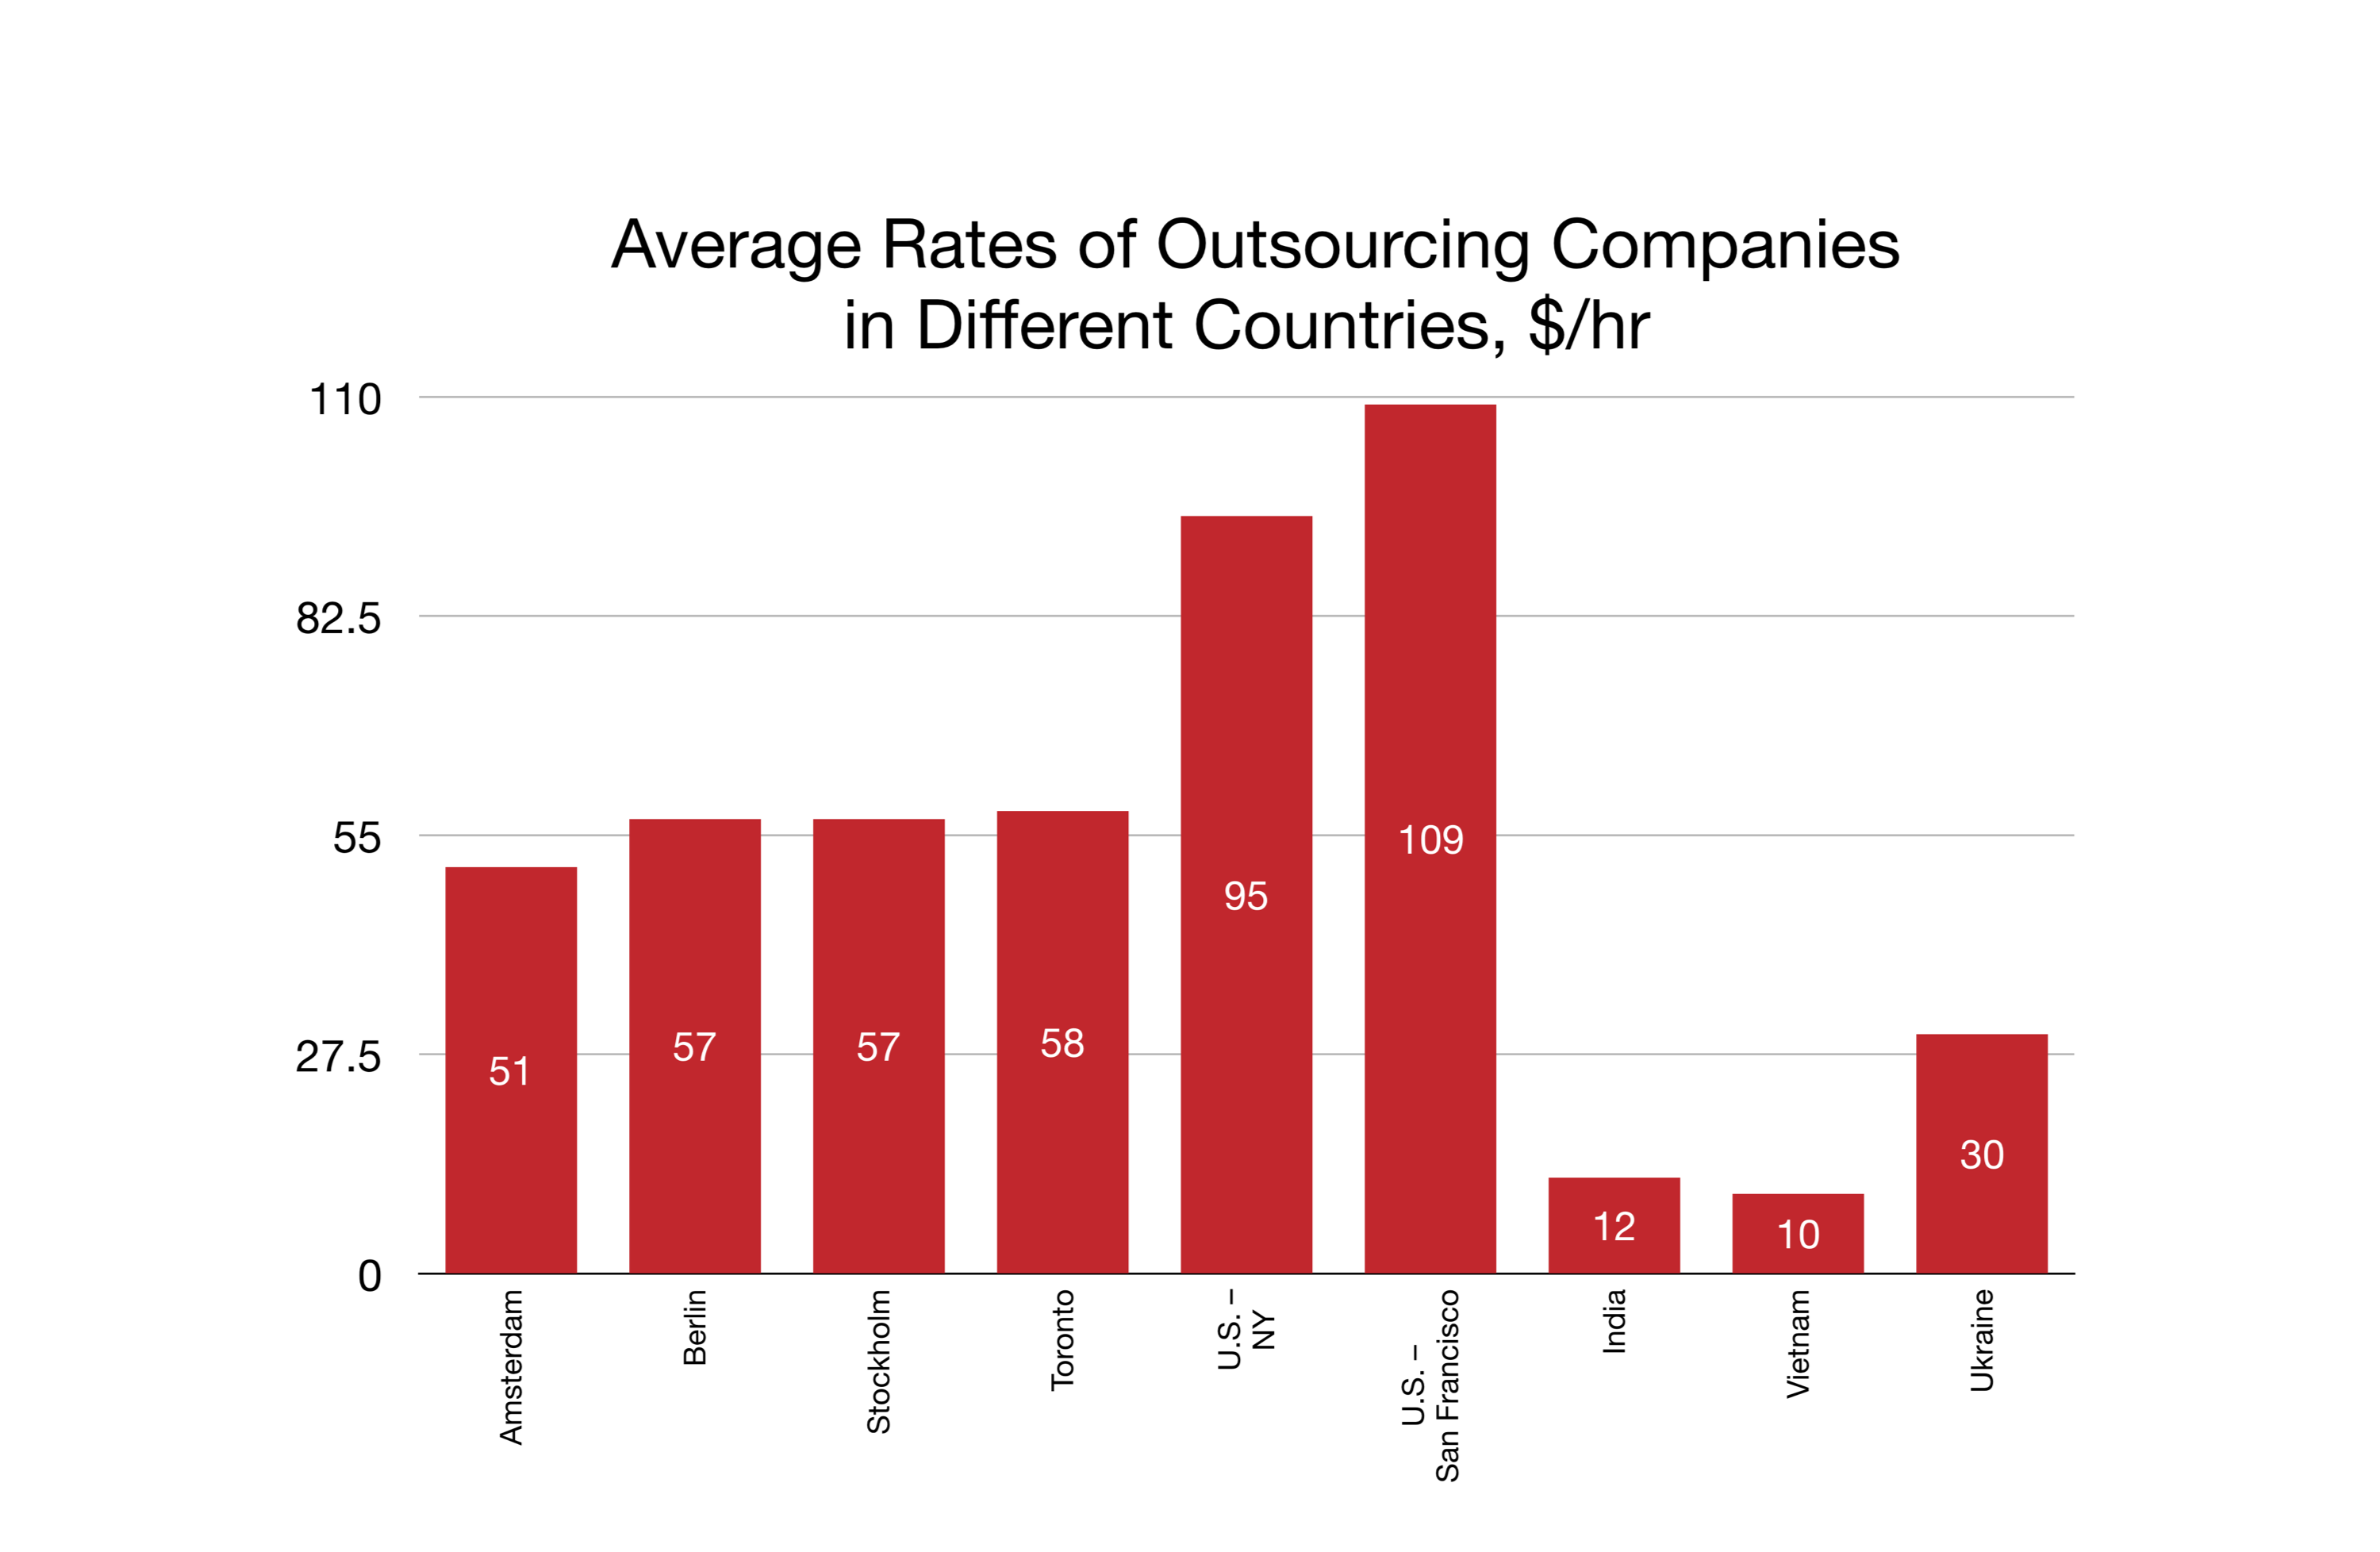 Average Rates of Outsourcing Companies in Different Countries, $/hr